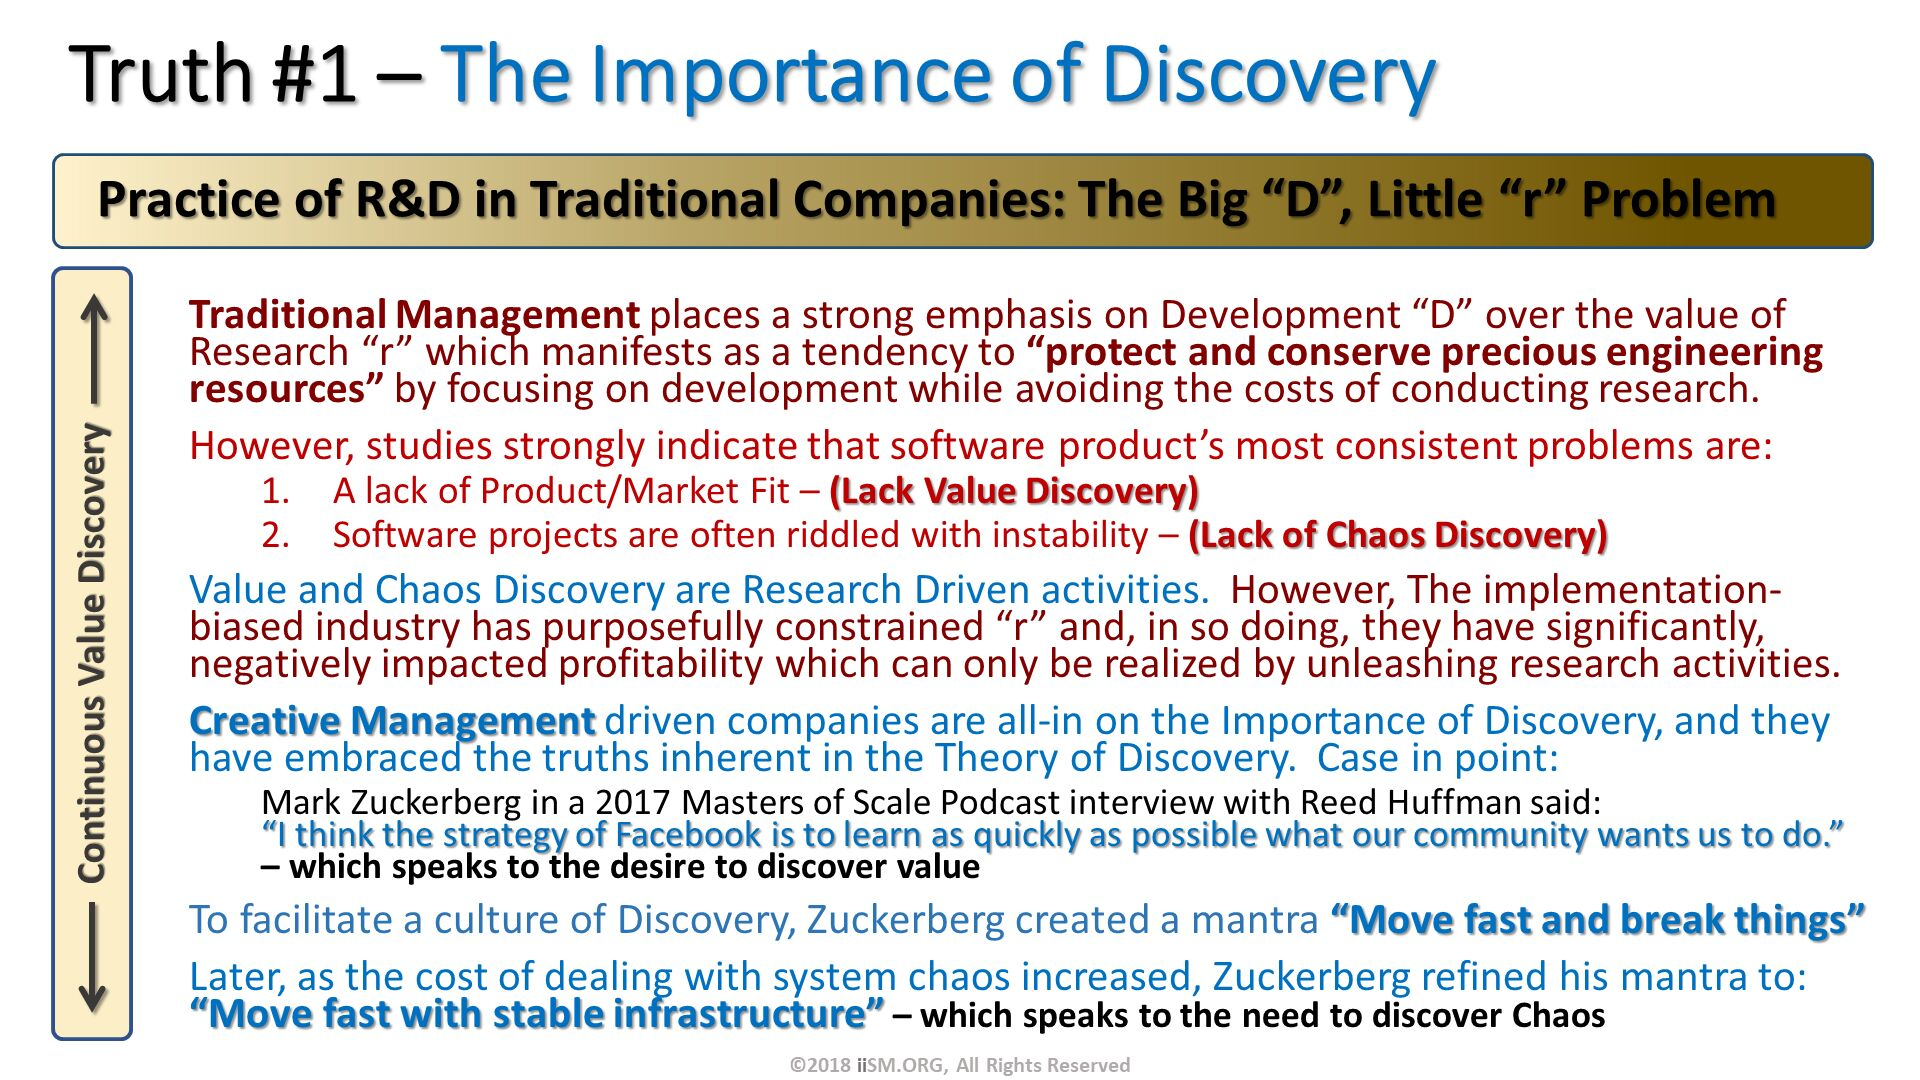 "Truth #1 – The Importance of Discovery. Traditional Management places a strong emphasis on Development ""D"" over the value of Research ""r"" which manifests as a tendency to ""protect and conserve precious engineering resources"" by focusing on development while avoiding the costs of conducting research. However, studies strongly indicate that software product's most consistent problems are: A lack of Product/Market Fit – (Lack Value Discovery) Software projects are often riddled with instability – (Lack of Chaos Discovery)   Value and Chaos Discovery are Research Driven activities.  However, The implementation-biased industry has purposefully constrained ""r"" and, in so doing, they have significantly, negatively impacted profitability which can only be realized by unleashing research activities. Creative Management driven companies are all-in on the Importance of Discovery, and they have embraced the truths inherent in the Theory of Discovery.  Case in point: Mark Zuckerberg in a 2017 Masters of Scale Podcast interview with Reed Huffman said: ""I think the strategy of Facebook is to learn as quickly as possible what our community wants us to do."" – which speaks to the desire to discover value To facilitate a culture of Discovery, Zuckerberg created a mantra ""Move fast and break things"" Later, as the cost of dealing with system chaos increased, Zuckerberg refined his mantra to: ""Move fast with stable infrastructure"" – which speaks to the need to discover Chaos.   Practice of R&D in Traditional Companies: The Big ""D"", Little ""r"" Problem. ©2018 iiSM.ORG, All Rights Reserved."